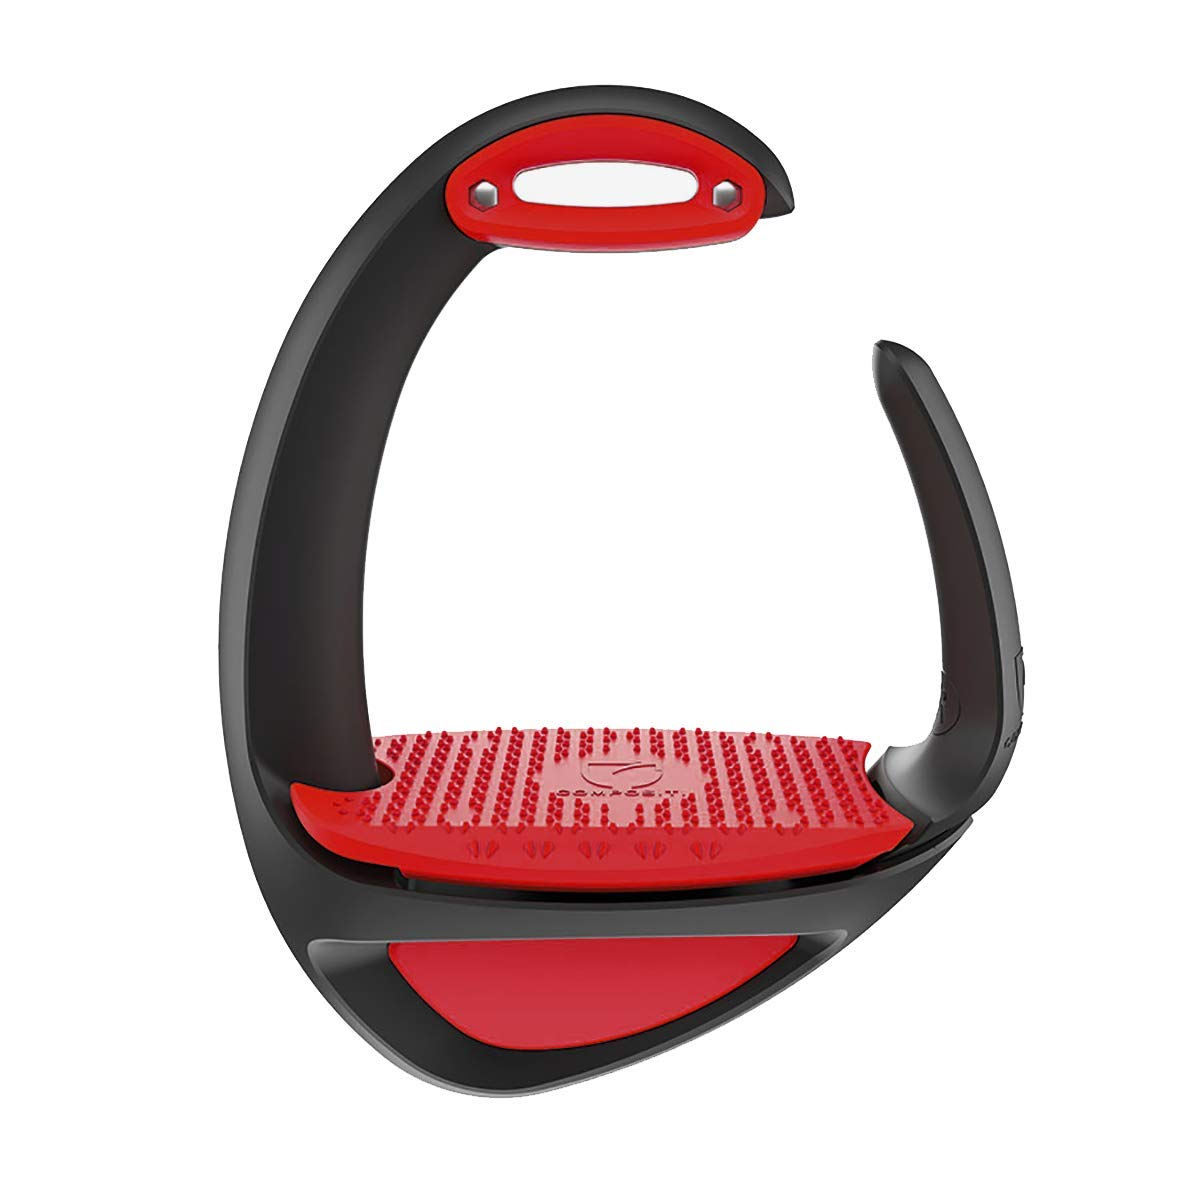 Compositi Ellipse Stirrups Comfort + (Black Red)